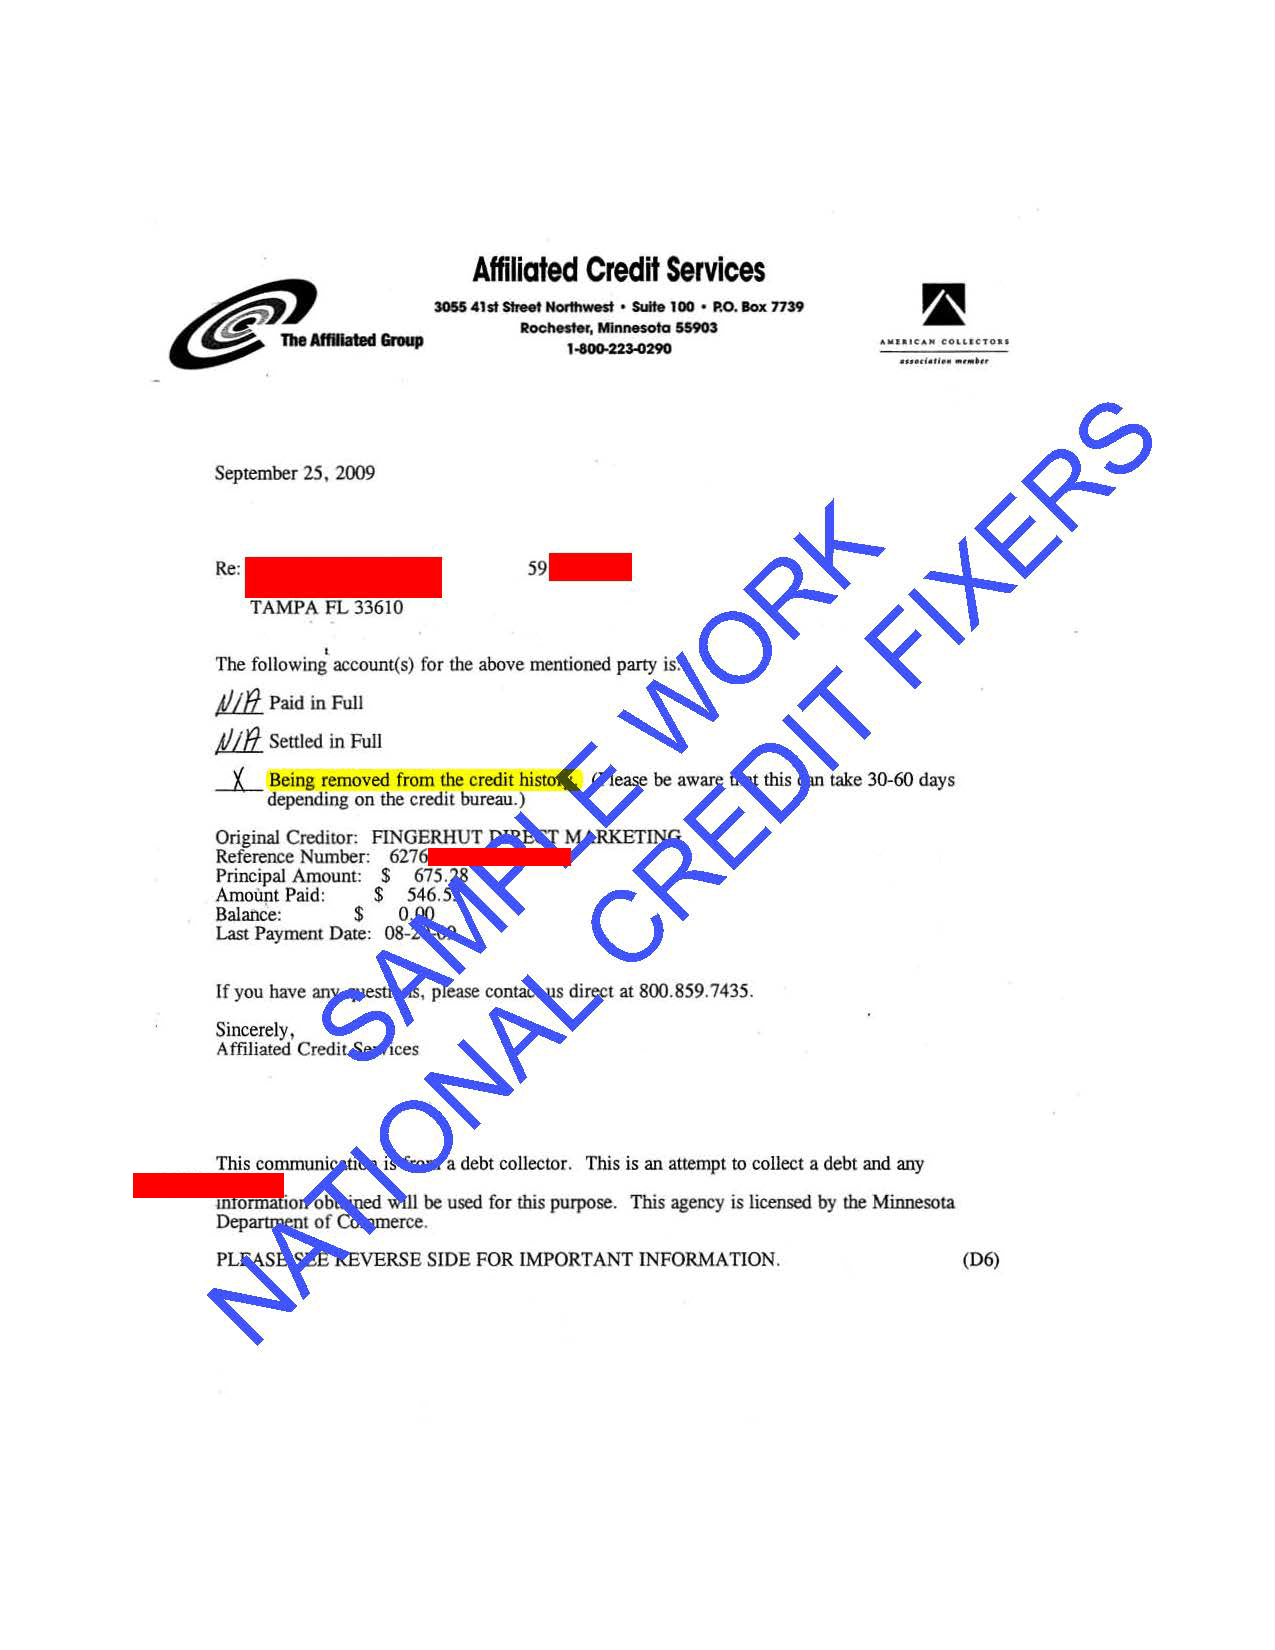 Affiliated Credit Services Deletion